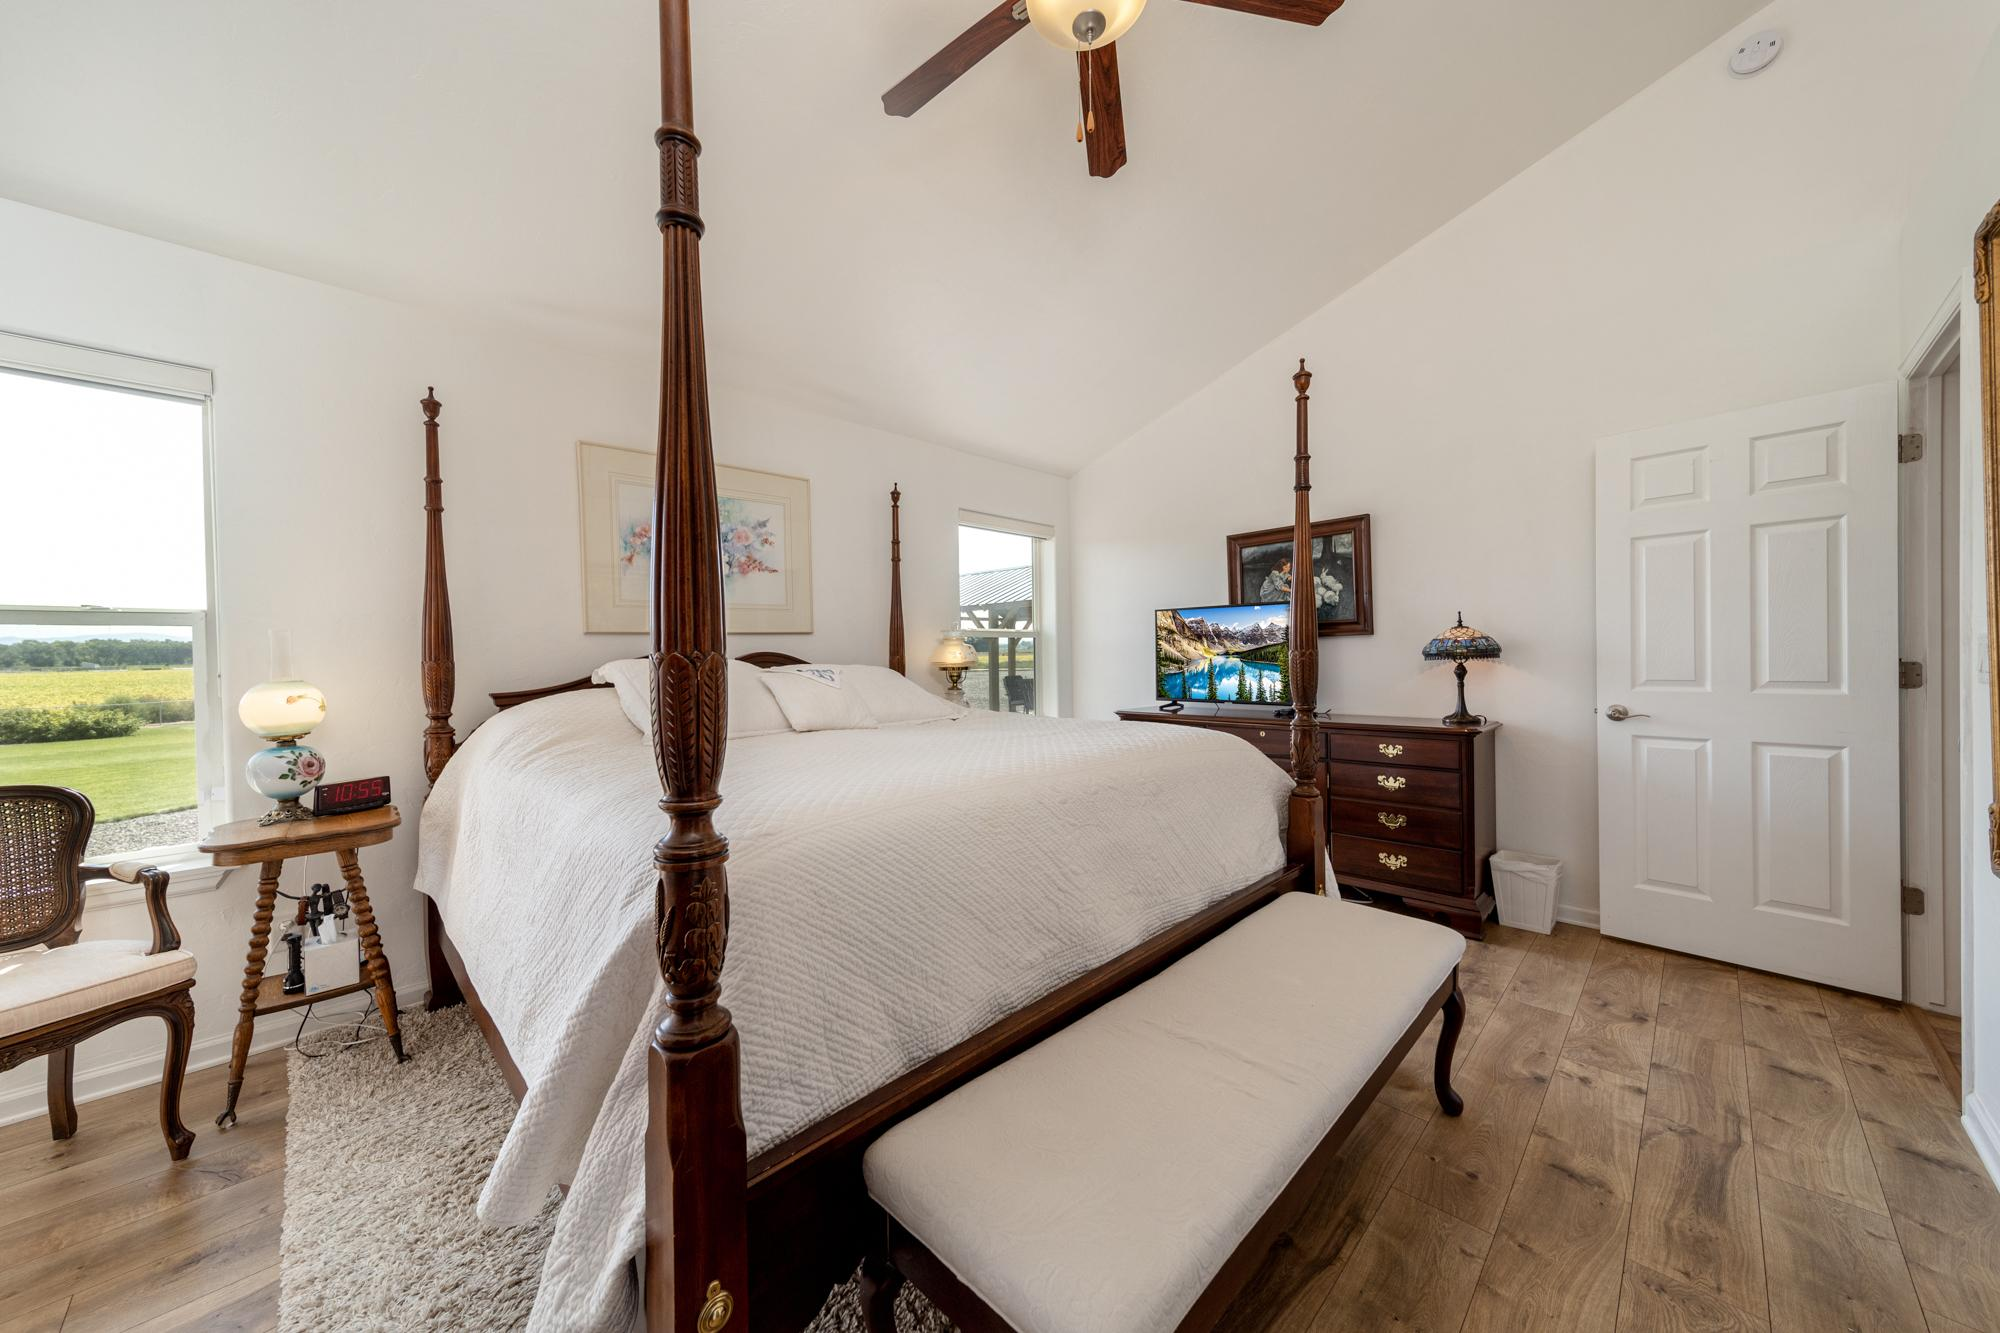 Primary Bedroom with Walkout Patio - 15552 6120 Rd Montrose, CO 81403 - Atha Team Country Real Estate